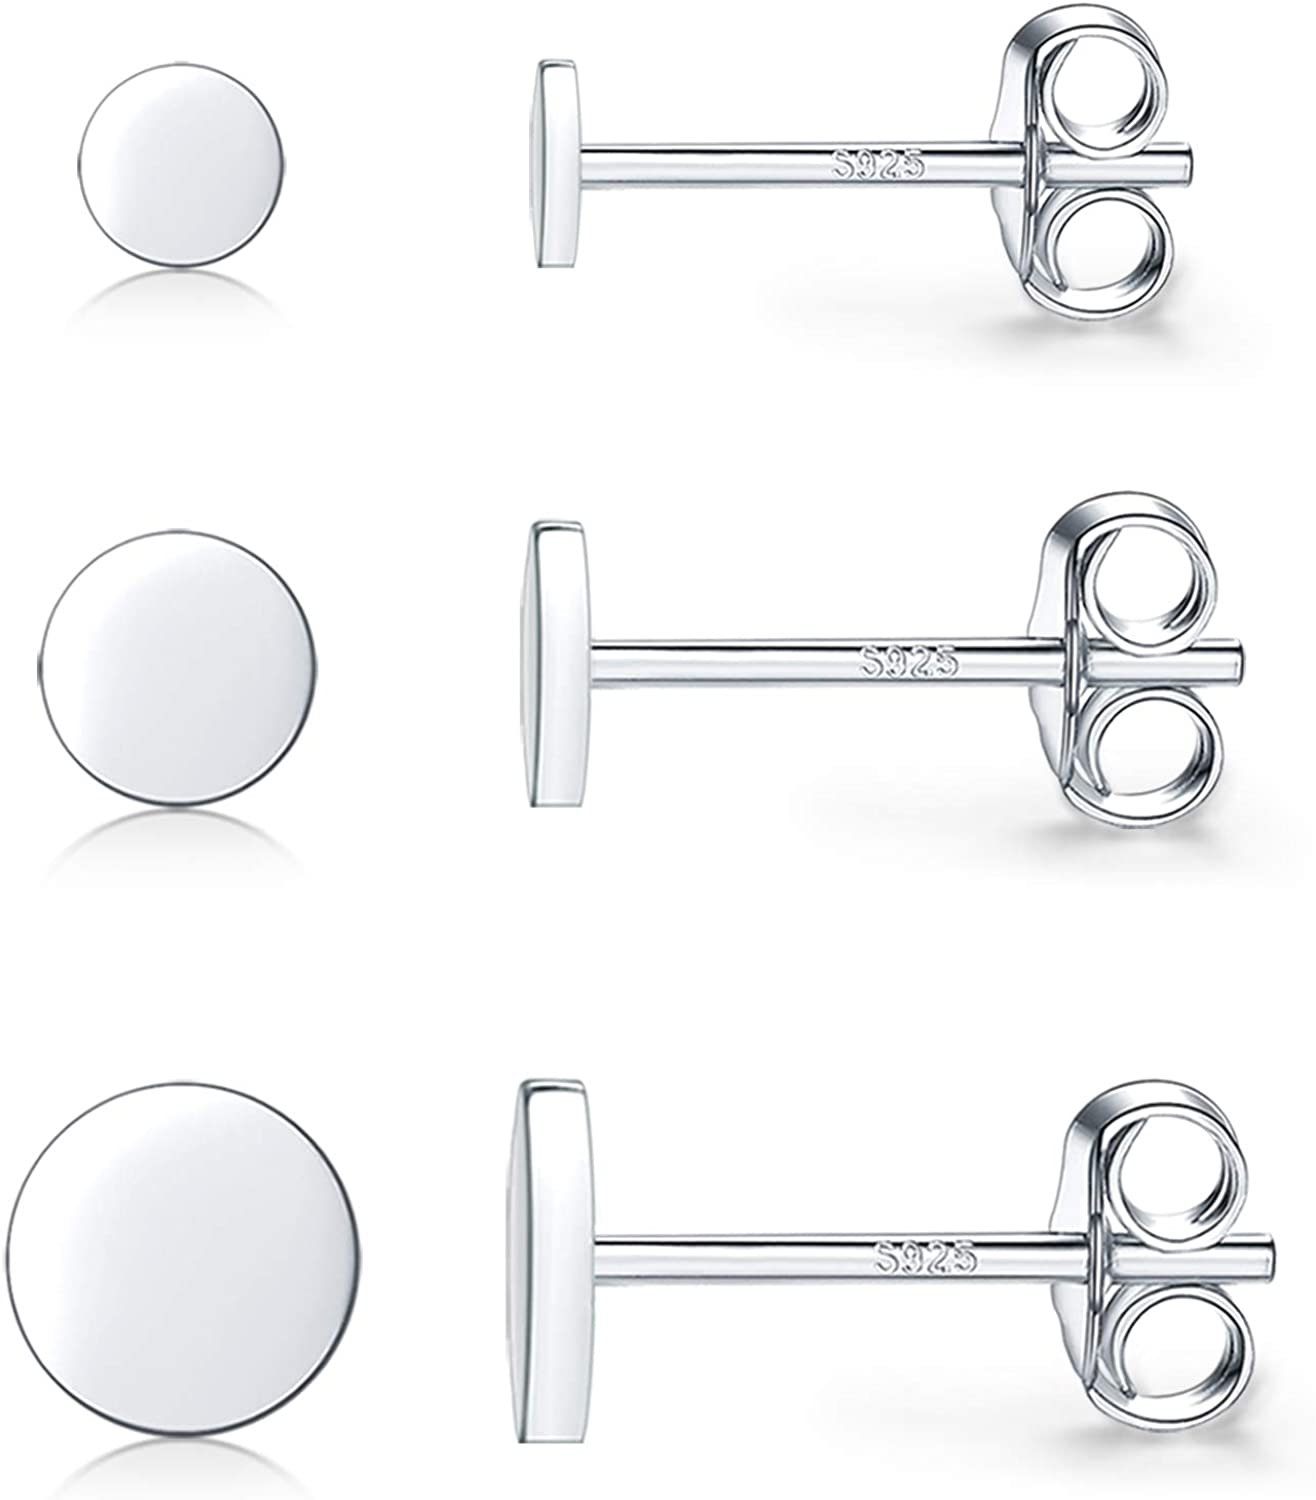 925 Sterling Silver Dot 70% OFF Outlet Stud Earrings Rou Small Simple ! Super beauty product restock quality top! 3 Pairs